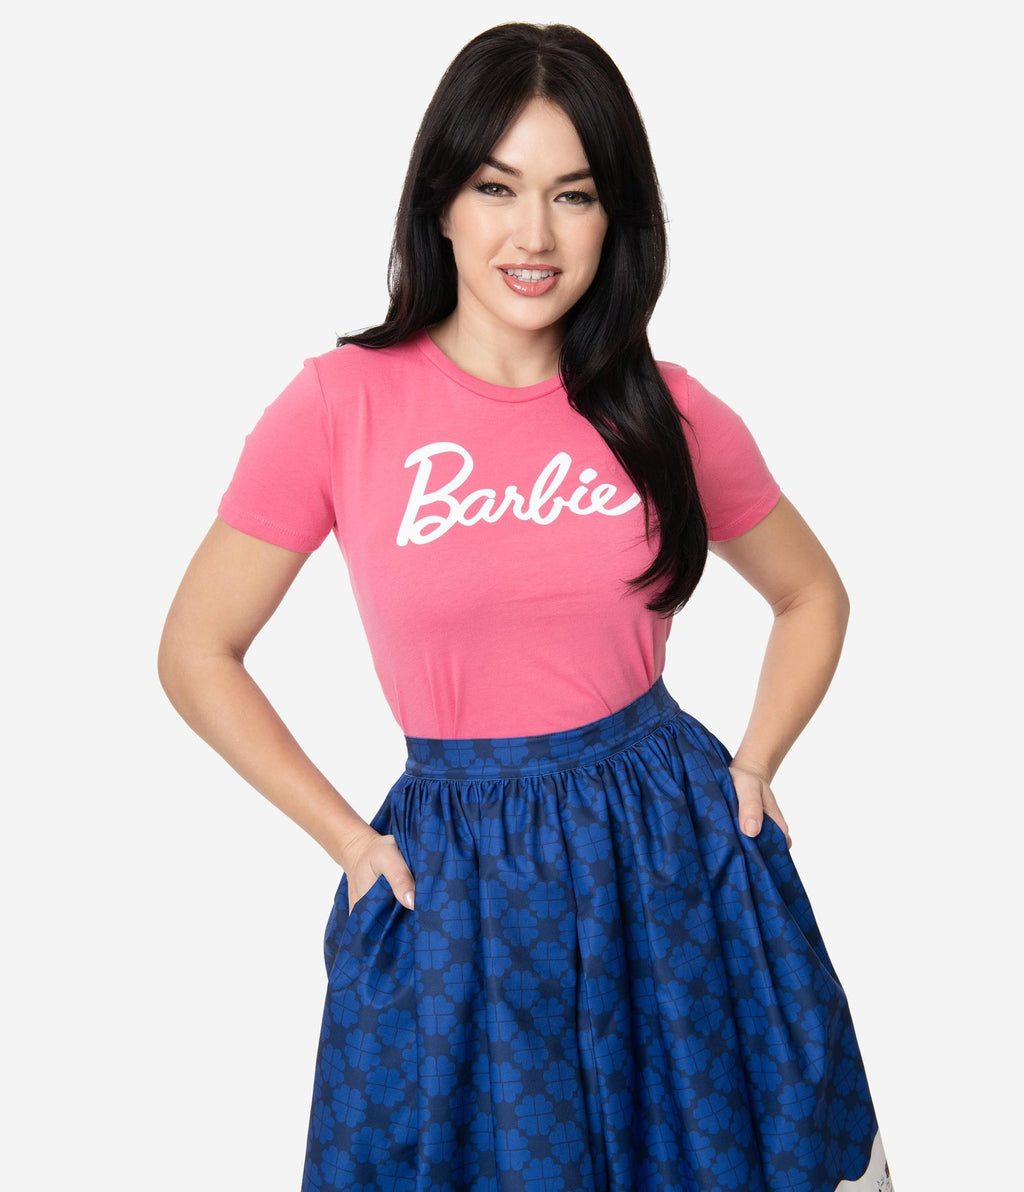 Barbie x Unique Vintage Hot Pink Barbie Logo Womens Tee (XL and 3XL ONLY)